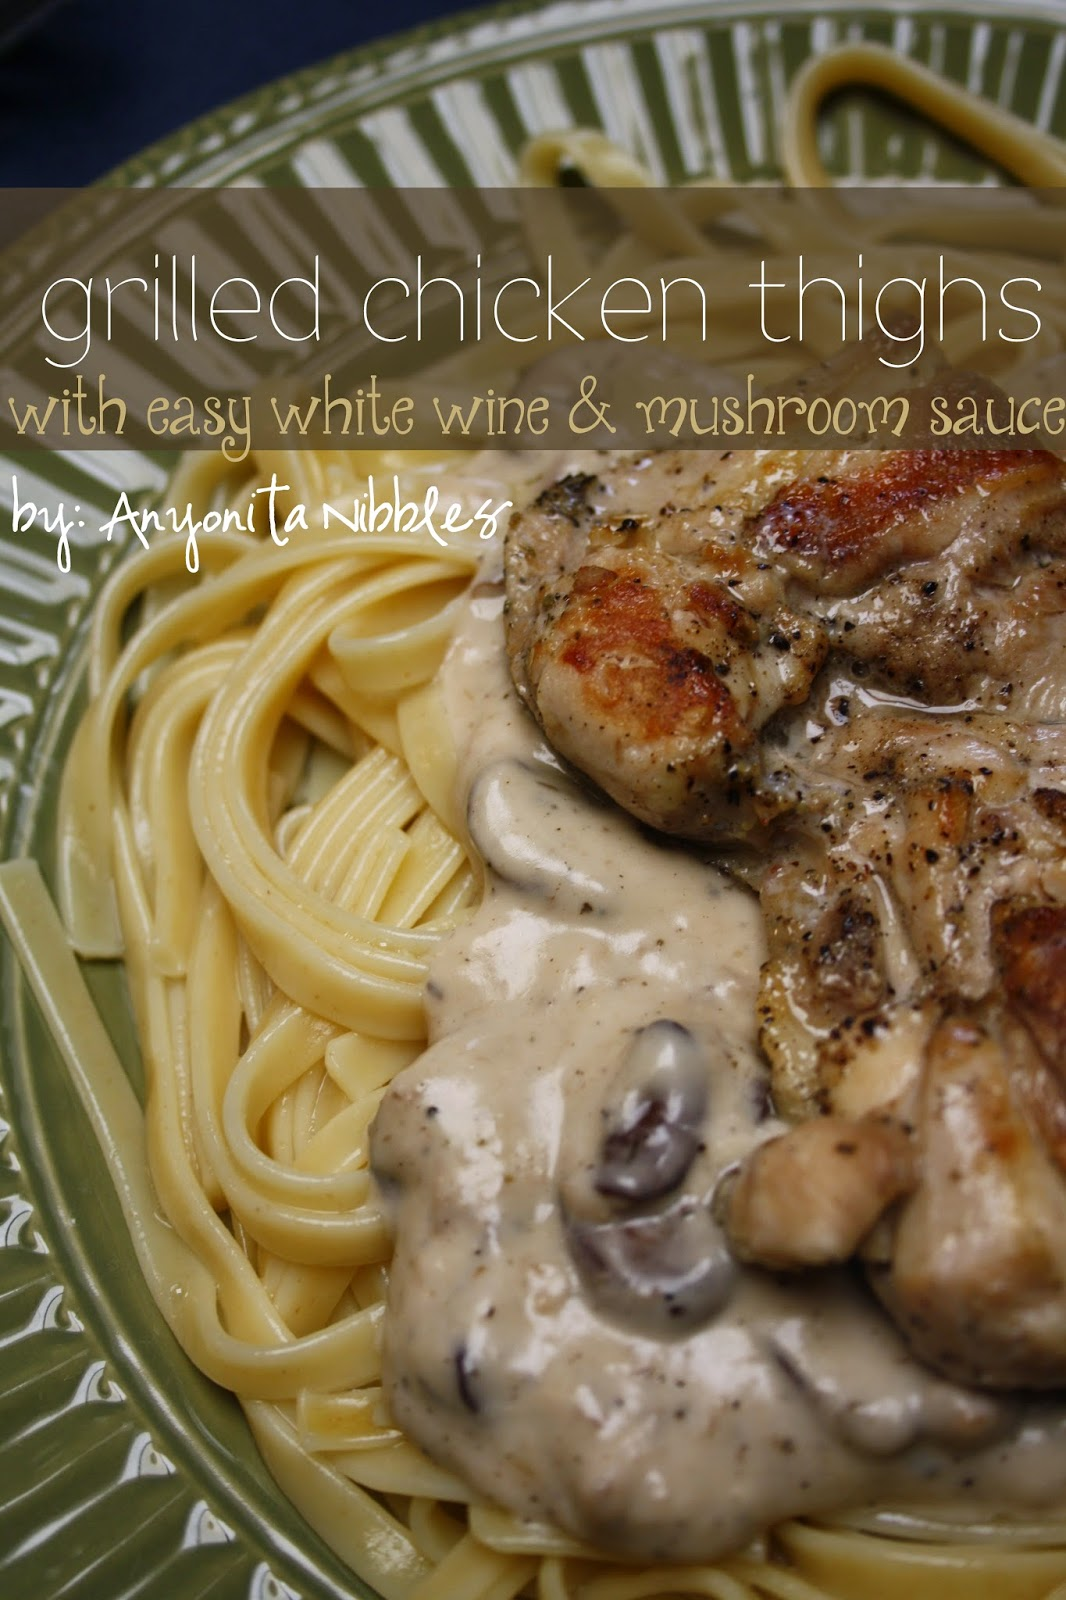 Grilled Chicken Thighs with Easy White Wine & Mushroom Sauce Recipe from www.anyonita-nibbles.co.uk Restaurant-quality sauce in less than 10 minutes